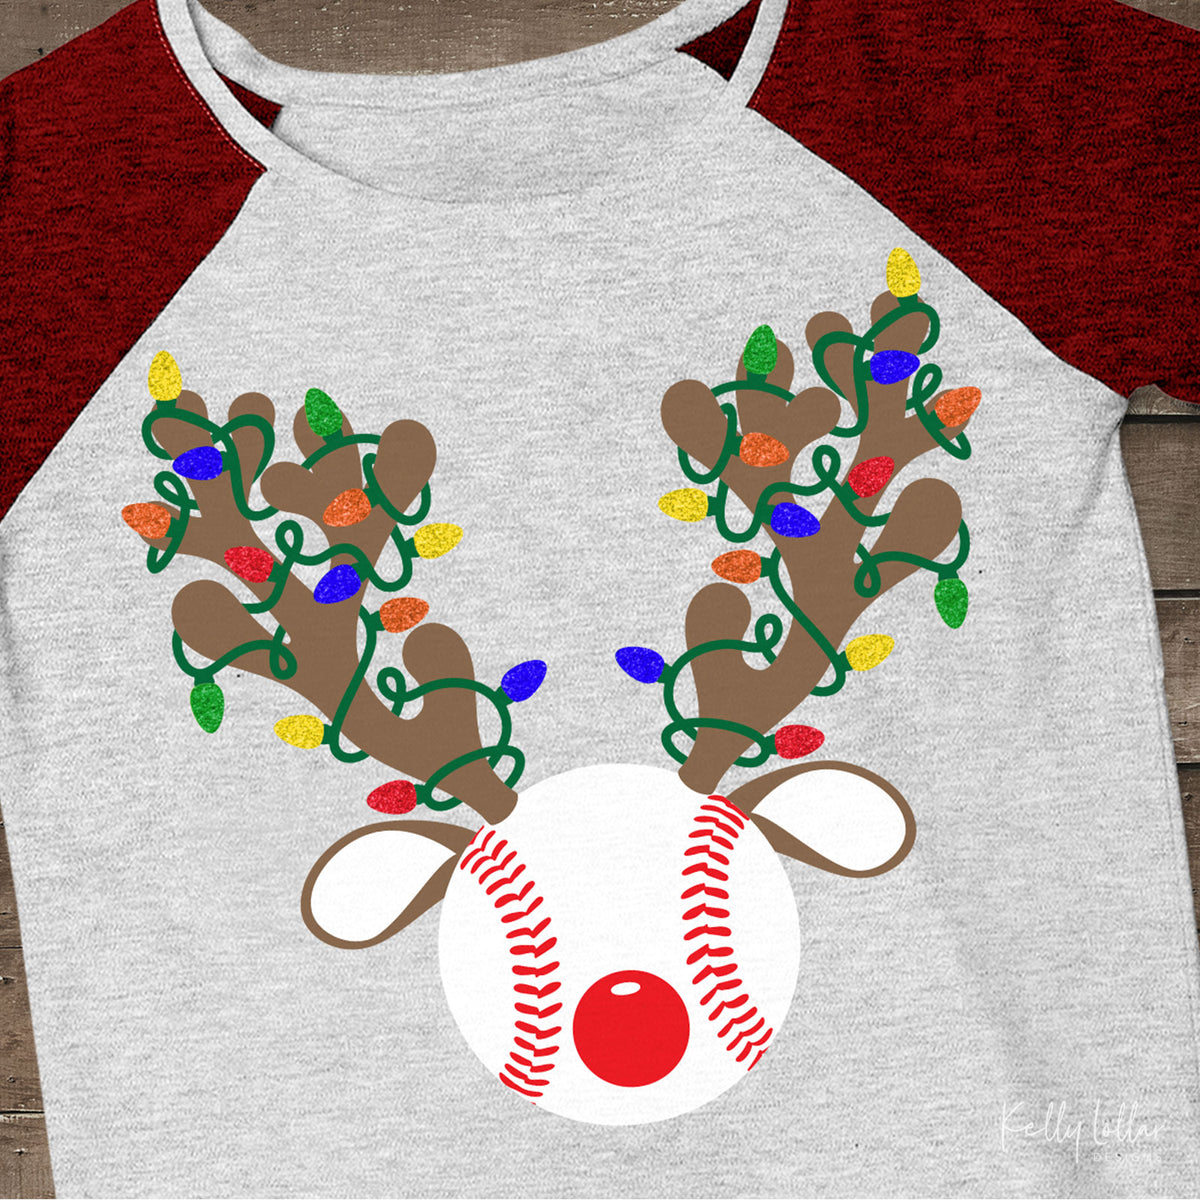 Reindeer Baseball | Christmas Light Wrapped Reindeer Antlers and Ears on a Baseball or Softball for Holiday Shirts and Decor | SVG DXF PNG Cut Files